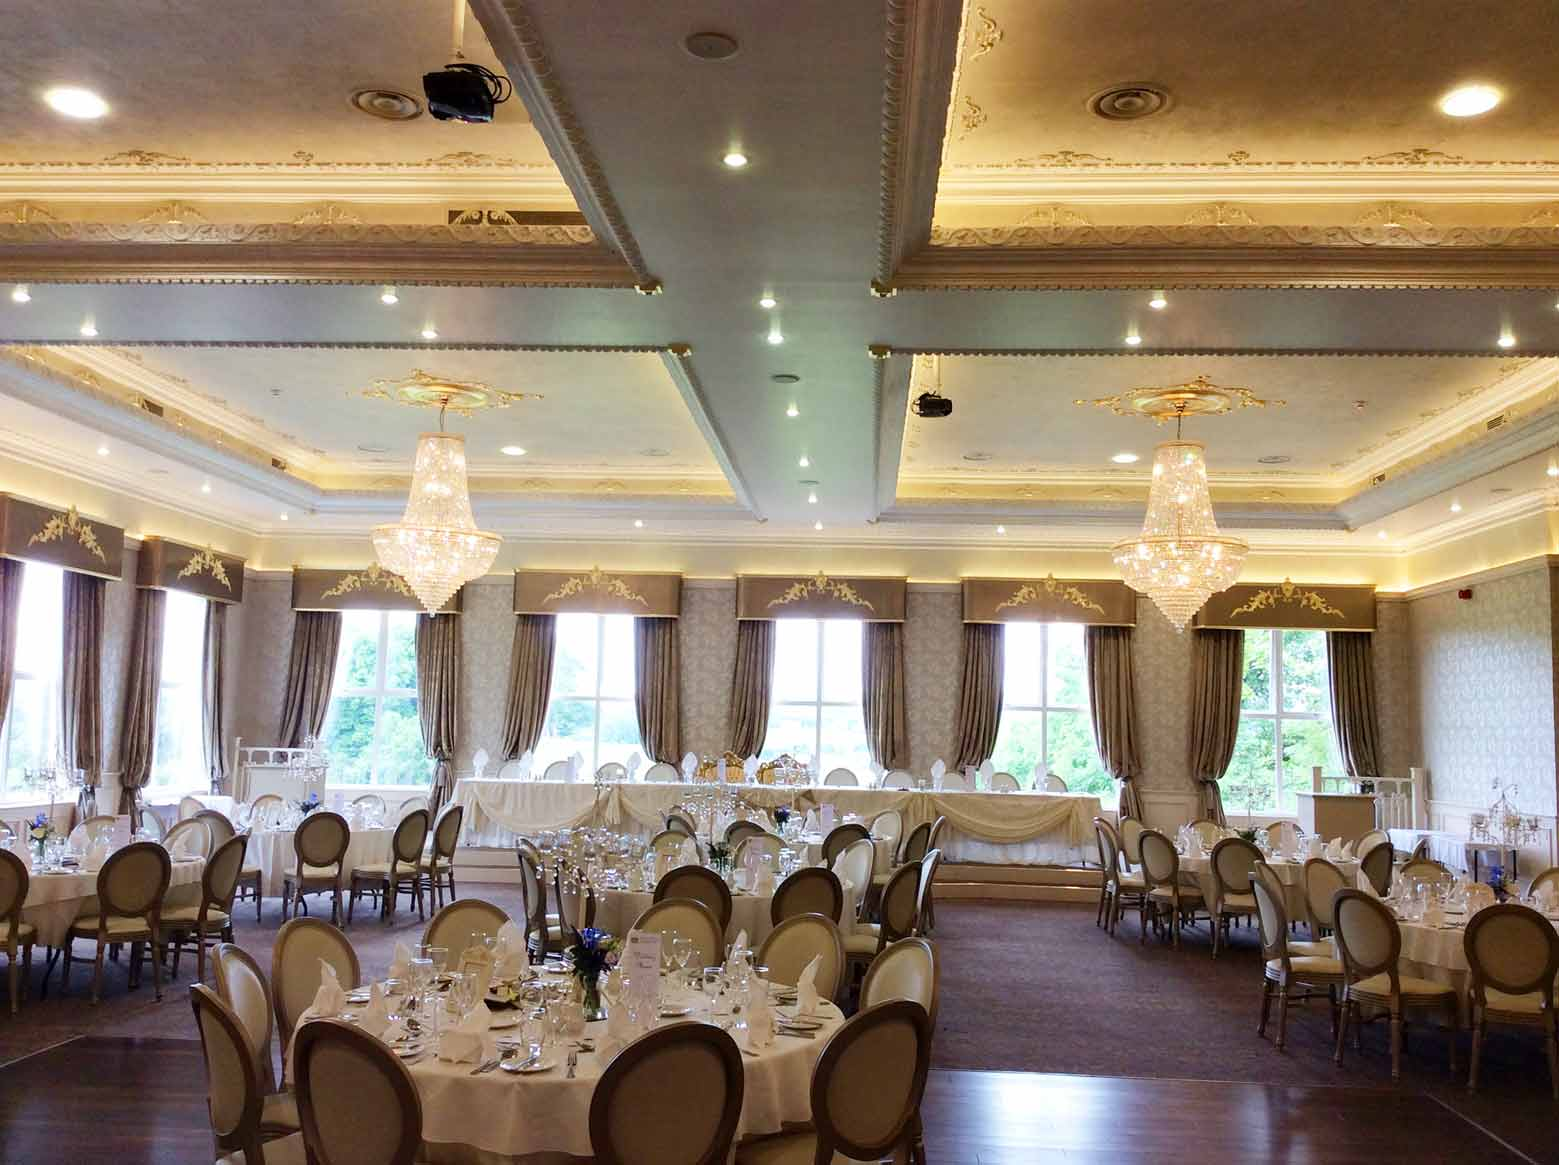 The hotel ceiling and pelmets were designed and constructed by our specialist decorators and decorative painters at Devlin In Design. We created an array of finishes on the ceiling including gilded mouldings, stucco and venetian plaster to create a beautiful wedding venue in Corick House Hotel and Spa.